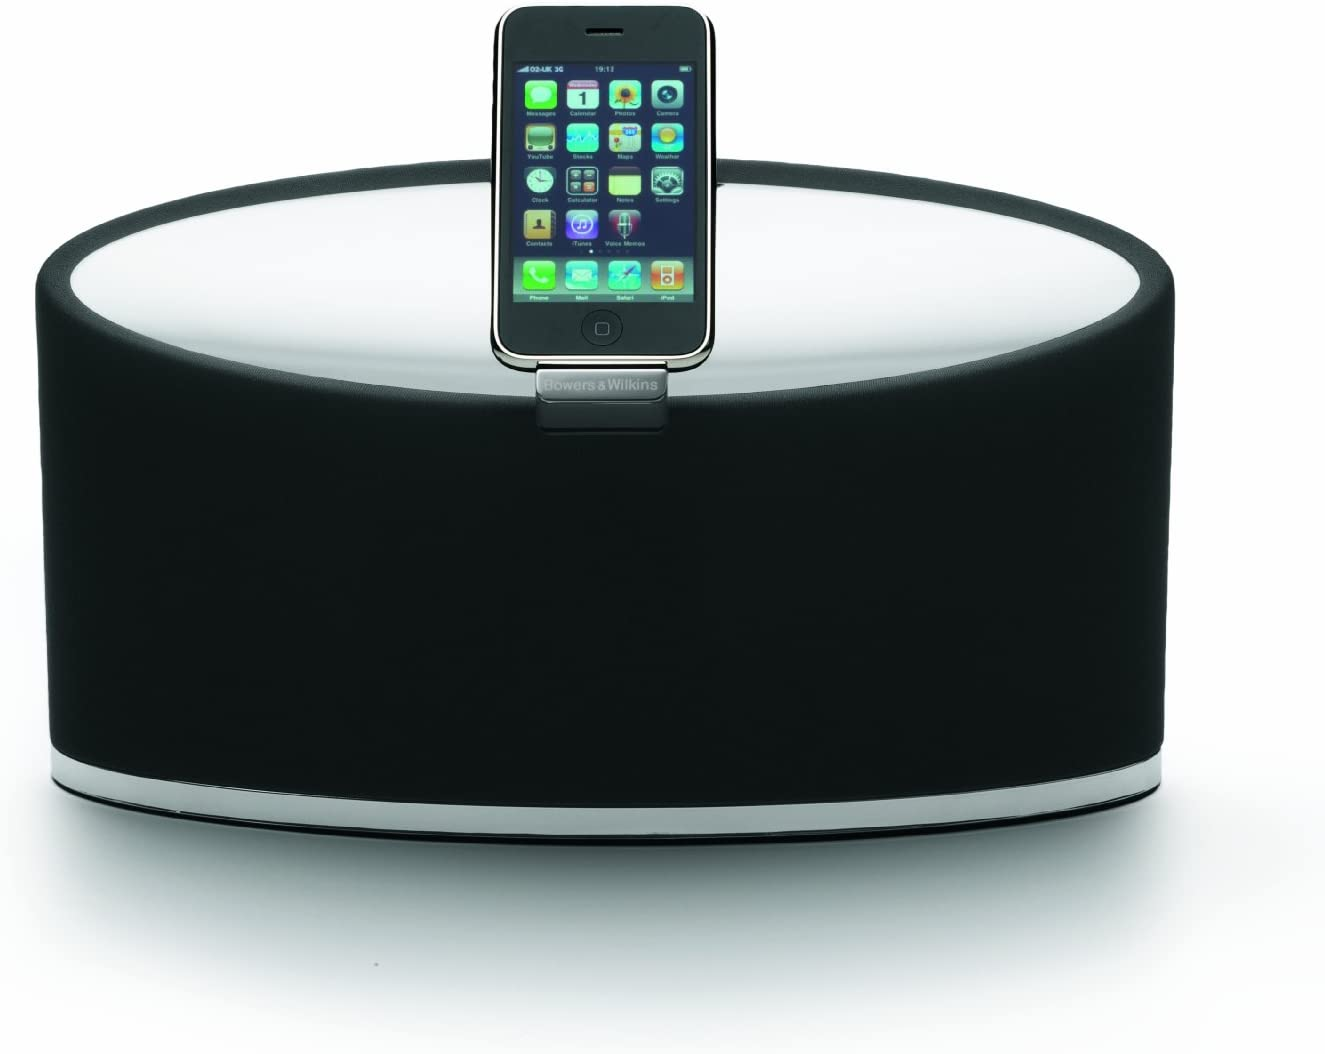 Amazon Com Bowers Wilkins Zeppelin Mini Docking Speaker For Ipod Home Audio Theater